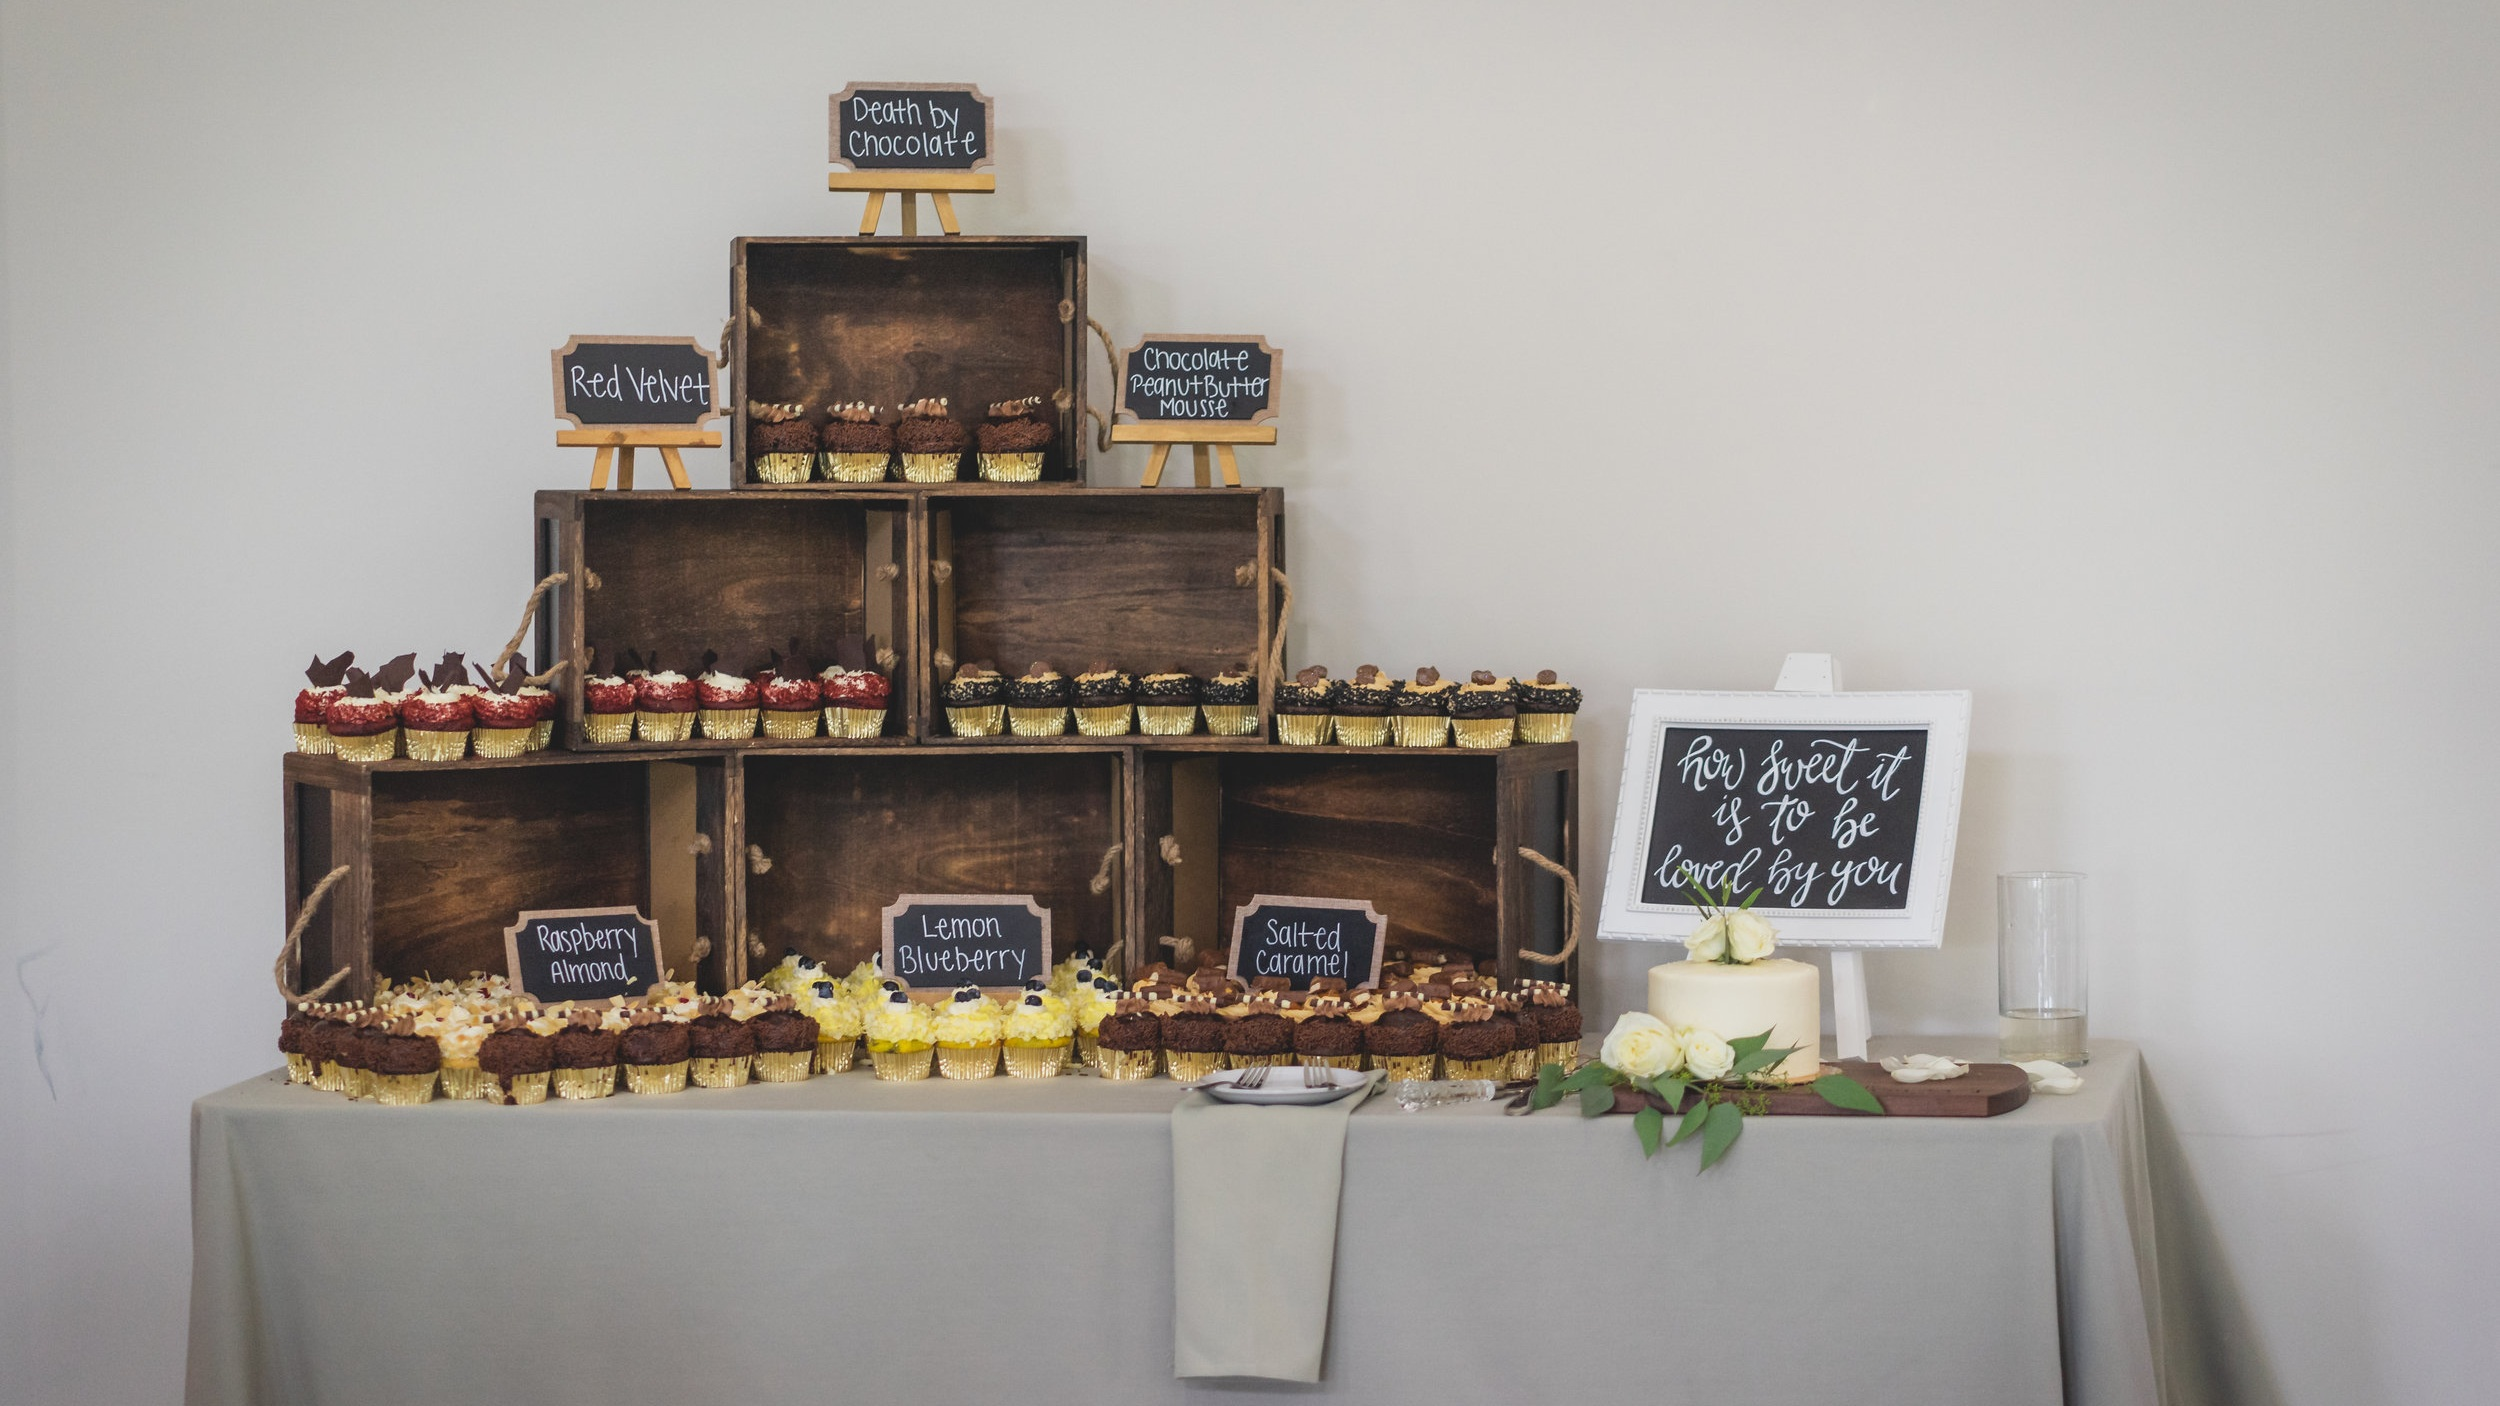 Rustic themed wedding - DIY dessert table featuring hand-crafted wooden signs.